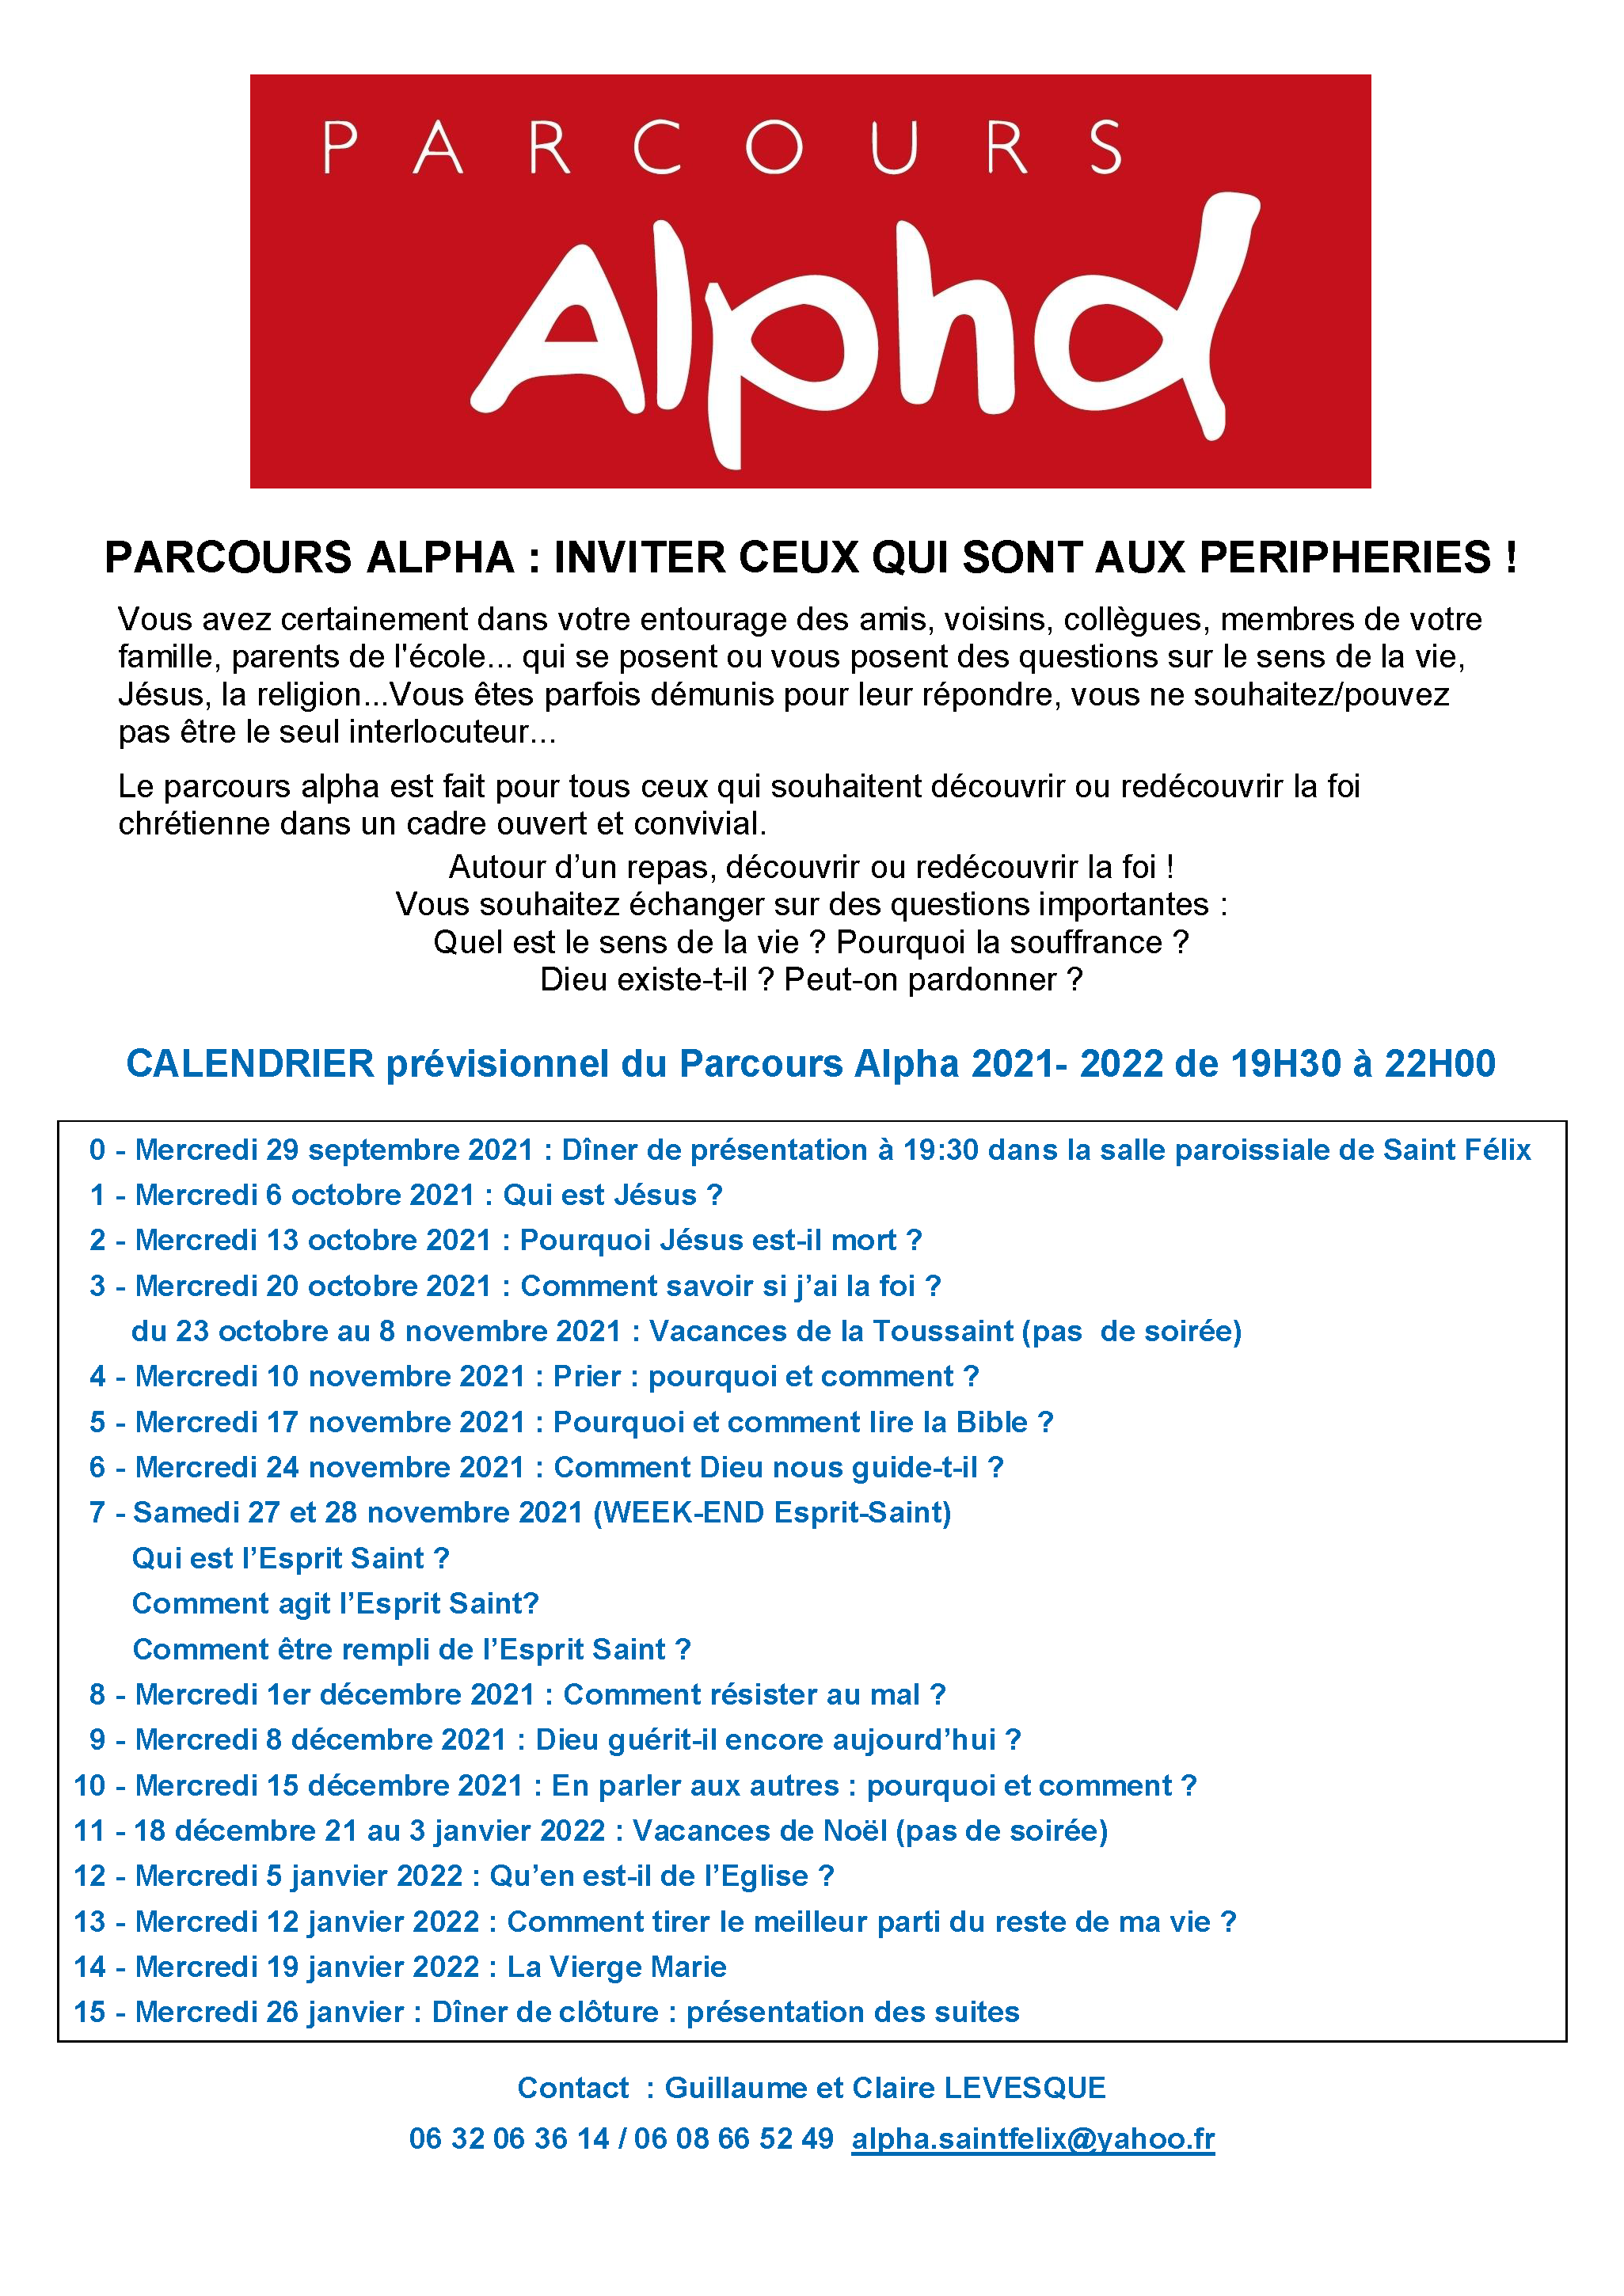 annonce-parcours-alpha-2021-red